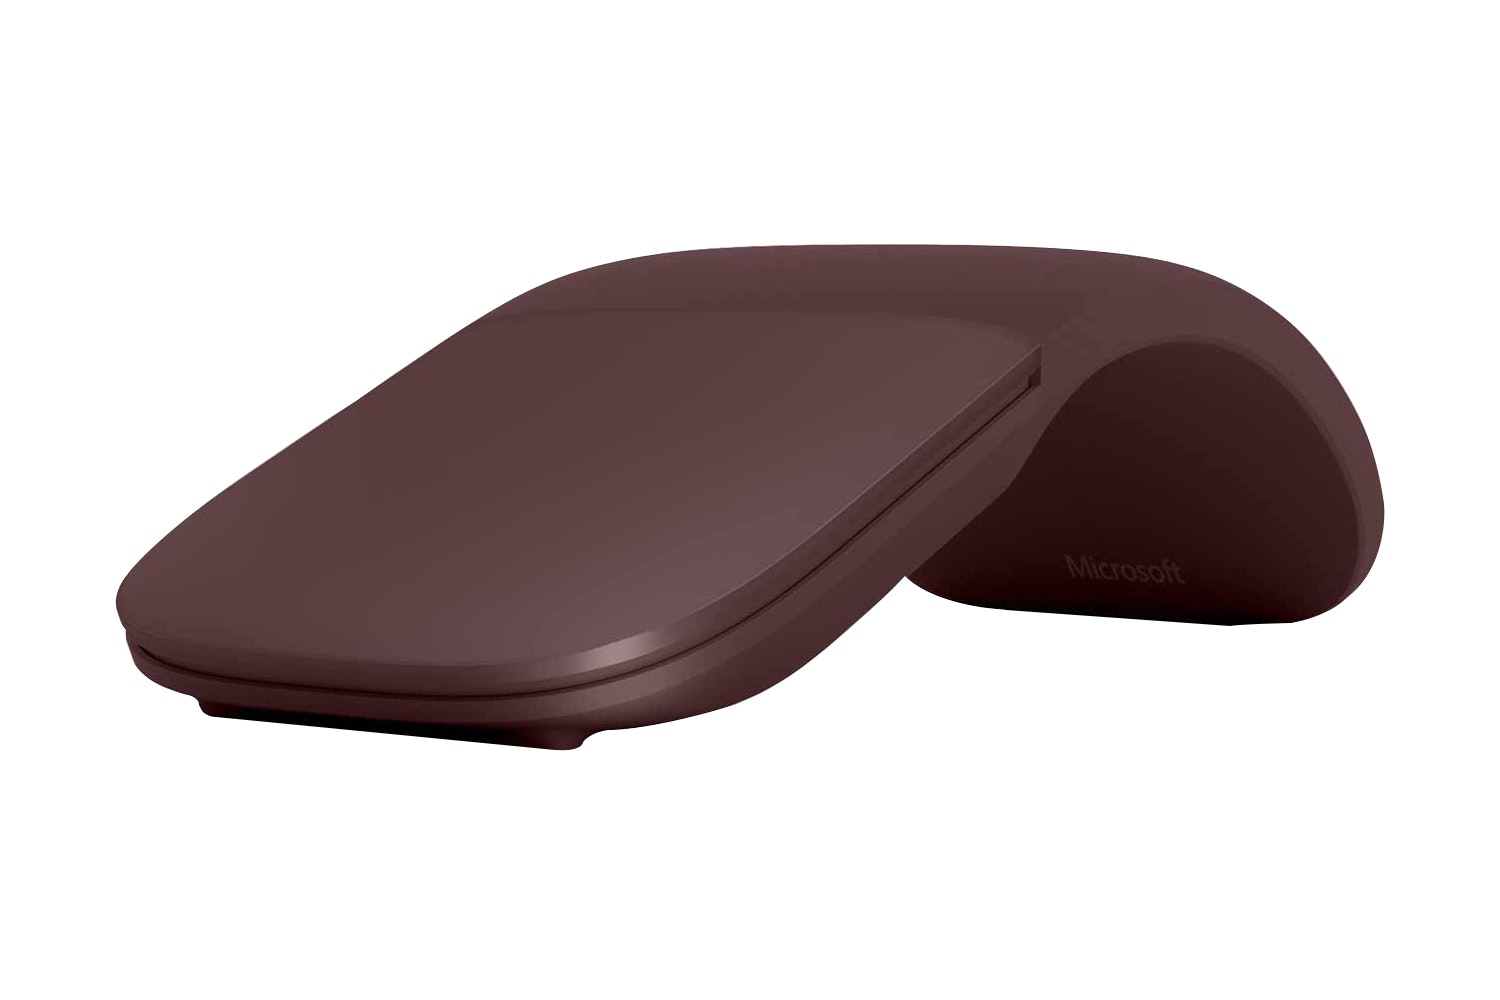 Microsoft Surface Arc Bluetooth Mouse | Burgundy